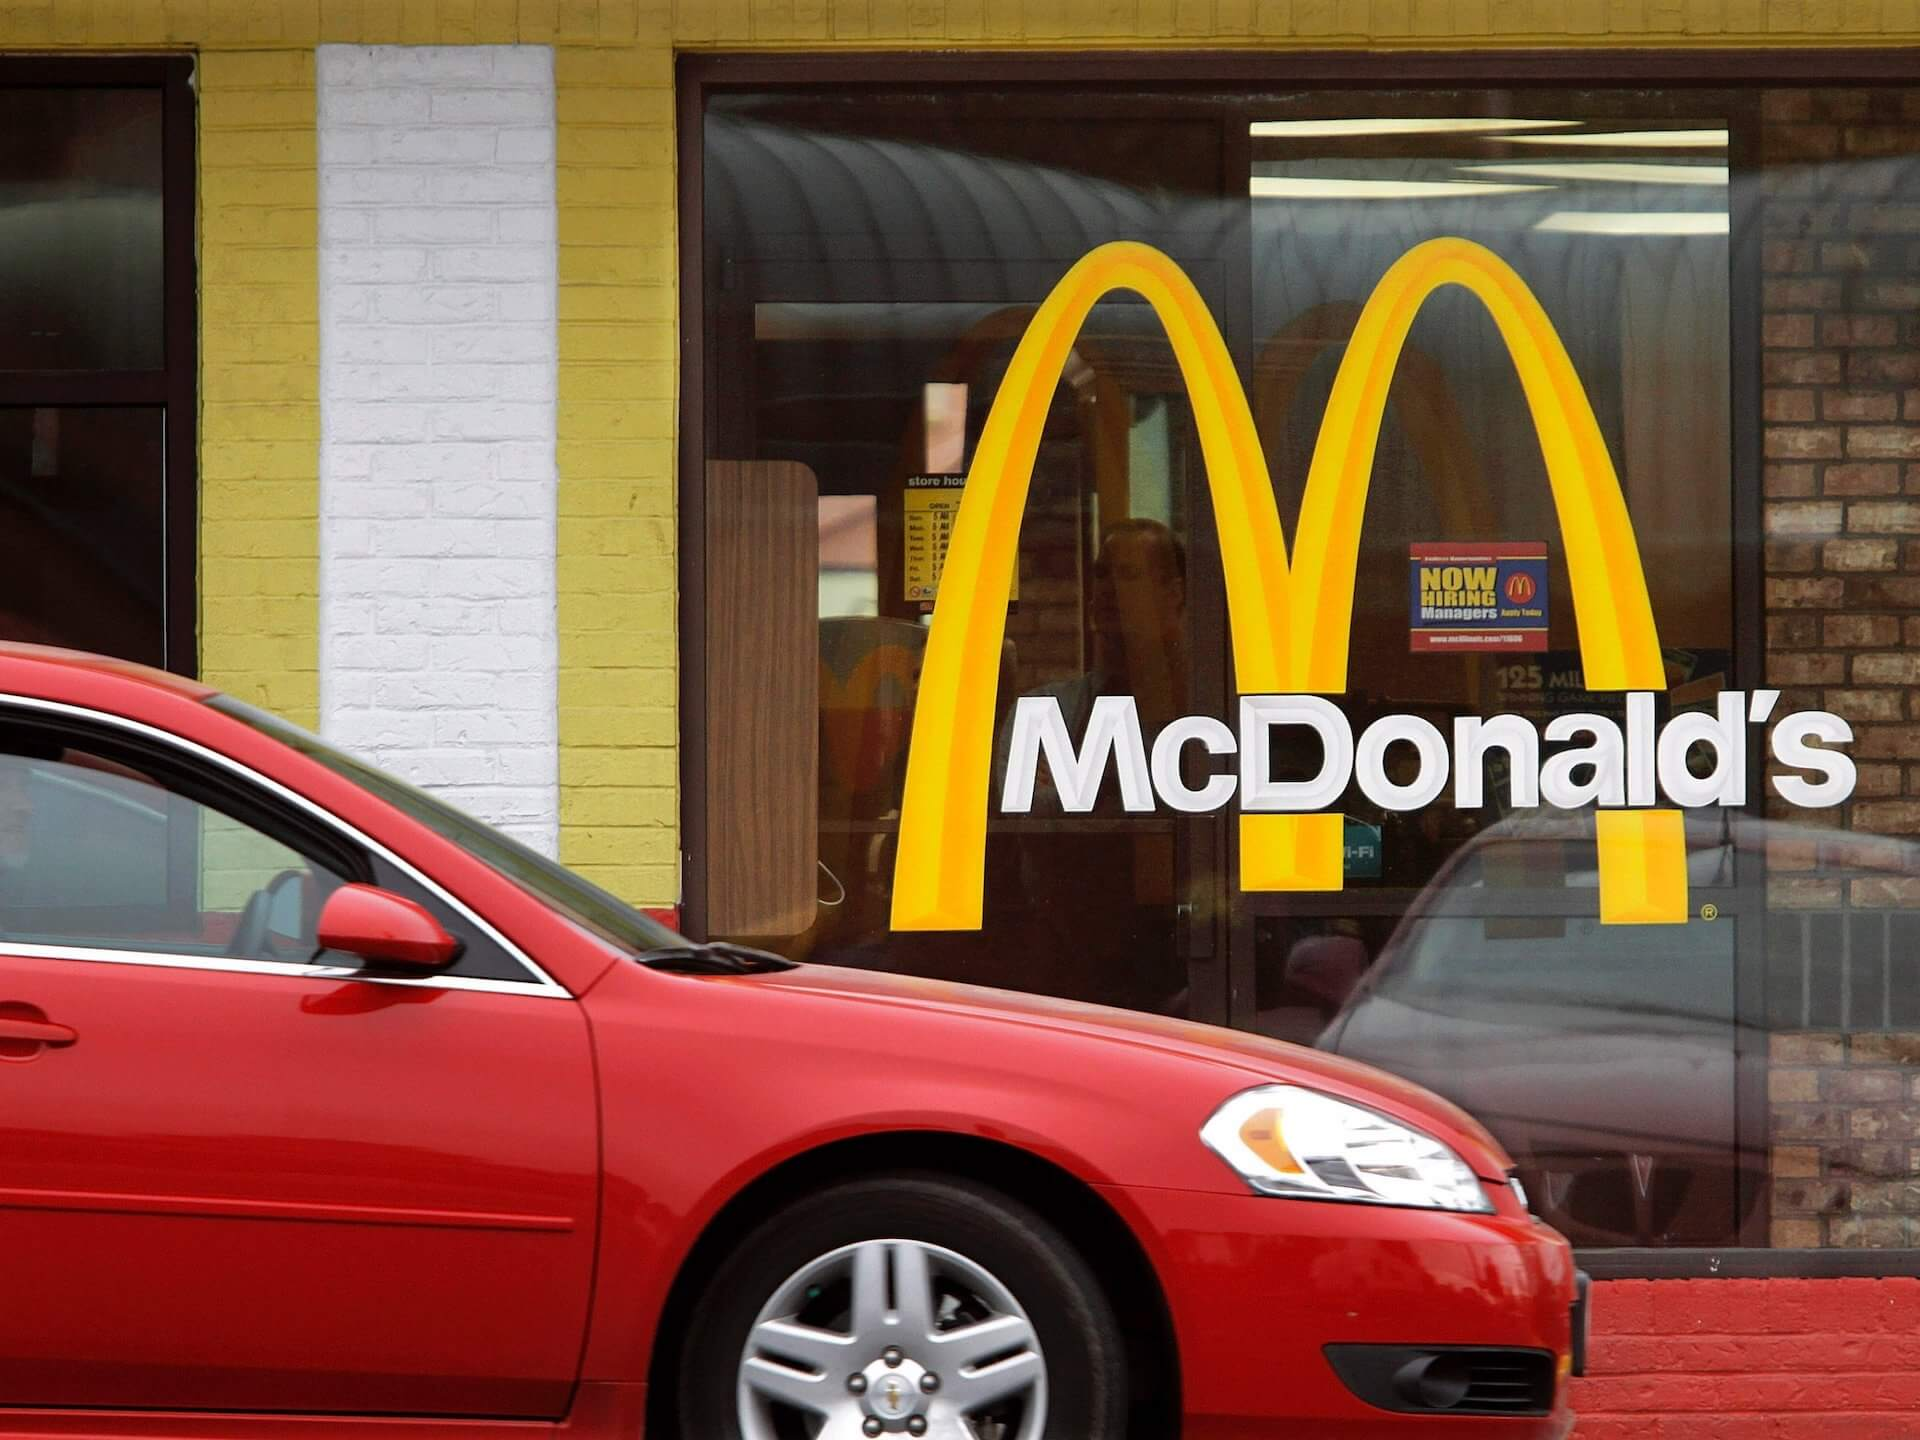 McDonald's latest tech move aims to bring voice-based, conversational ordering to the dining experience